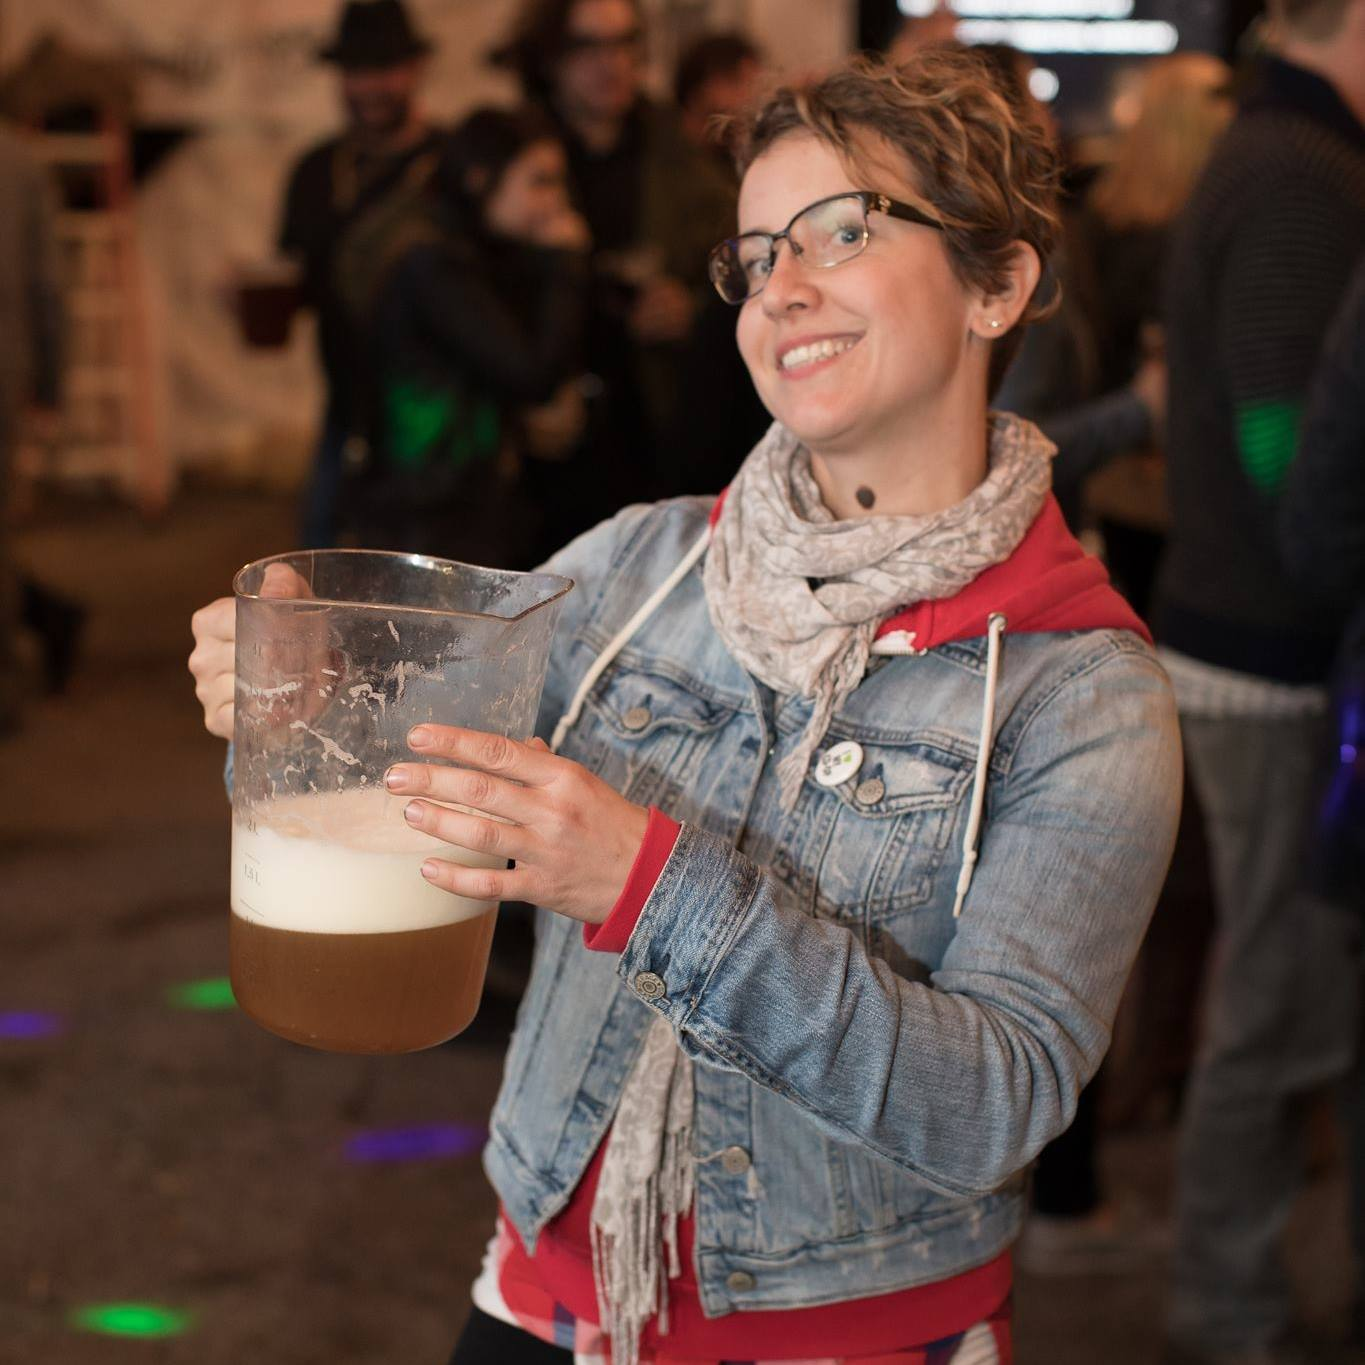 Alex Szaflarska - Alex is a worker-owner of Together We're Bitter Co-operative Brewing and co-organizer of Craftoberfest. In her other life, she is a PhD student focusing on alternative governance models in conservation. Her favourite meal is breakfast.